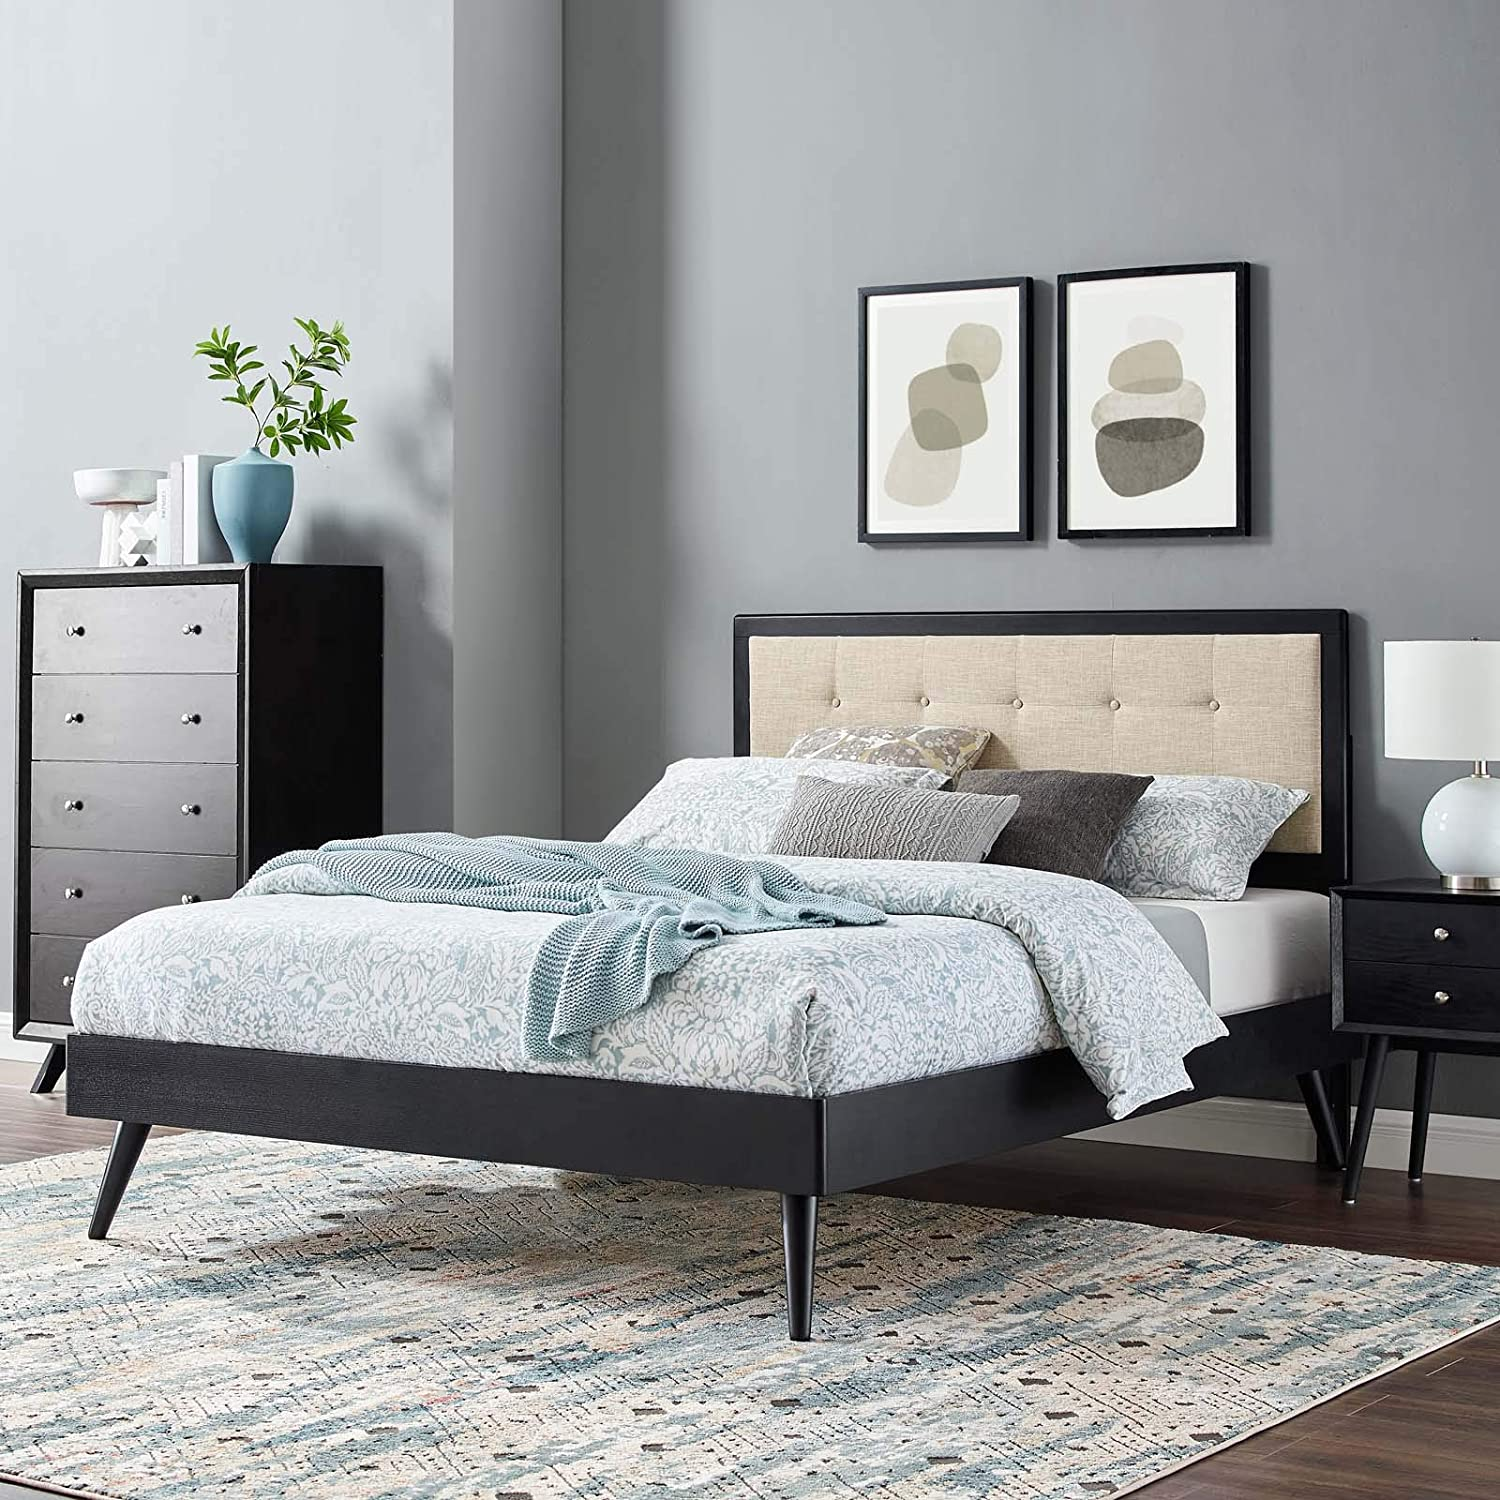 Modway Willow Wood King Platform Bed in Black Beige with Splayed Legs